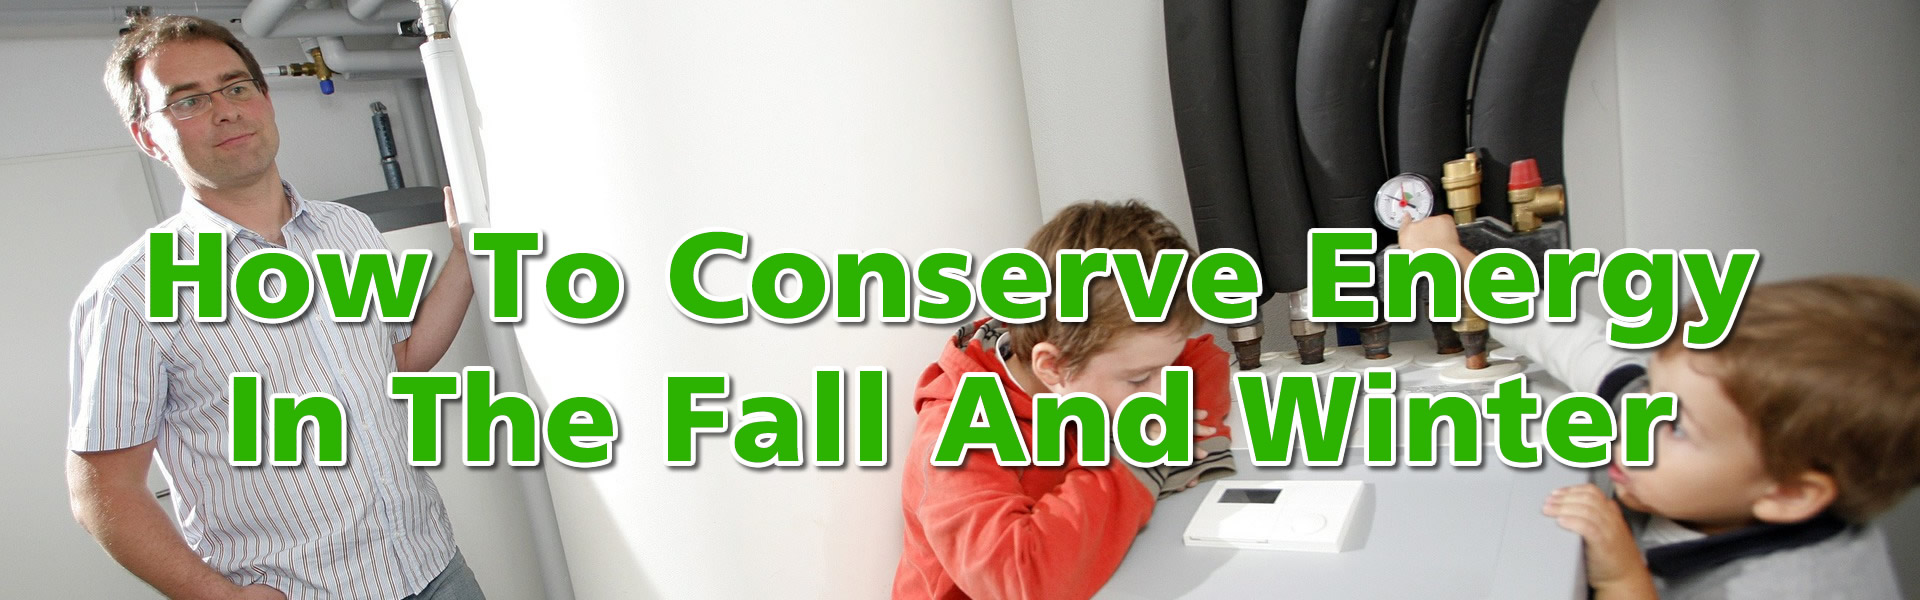 How To Save Money Conserving Energy During Fall and Winter